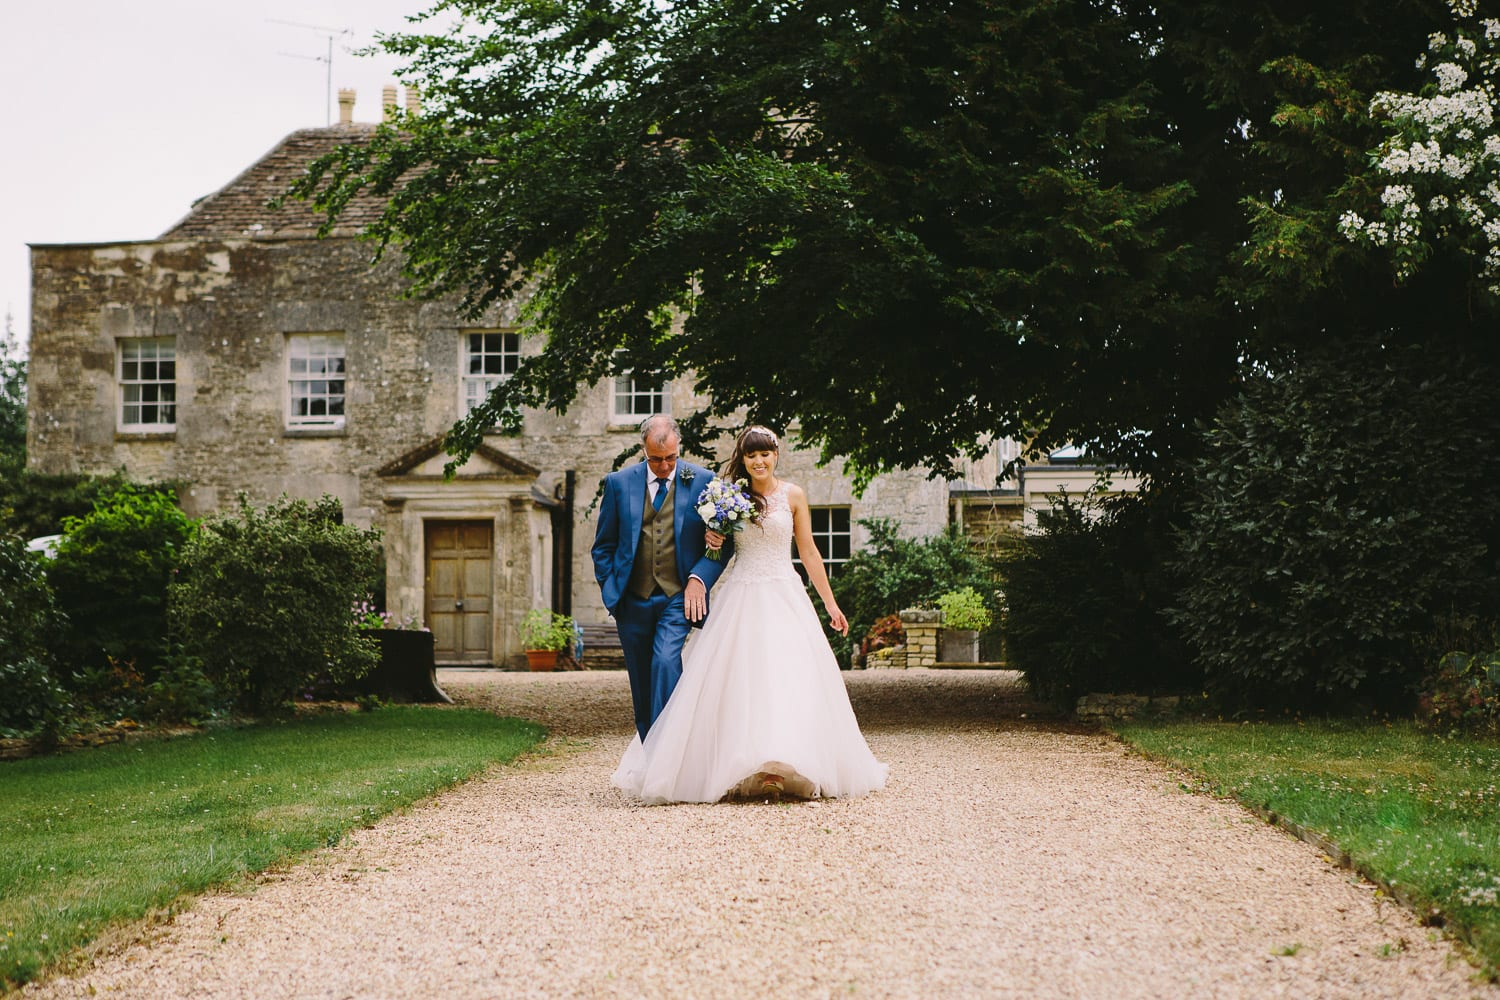 The bride and her father walk from the house to the outdoor wedding ceremony